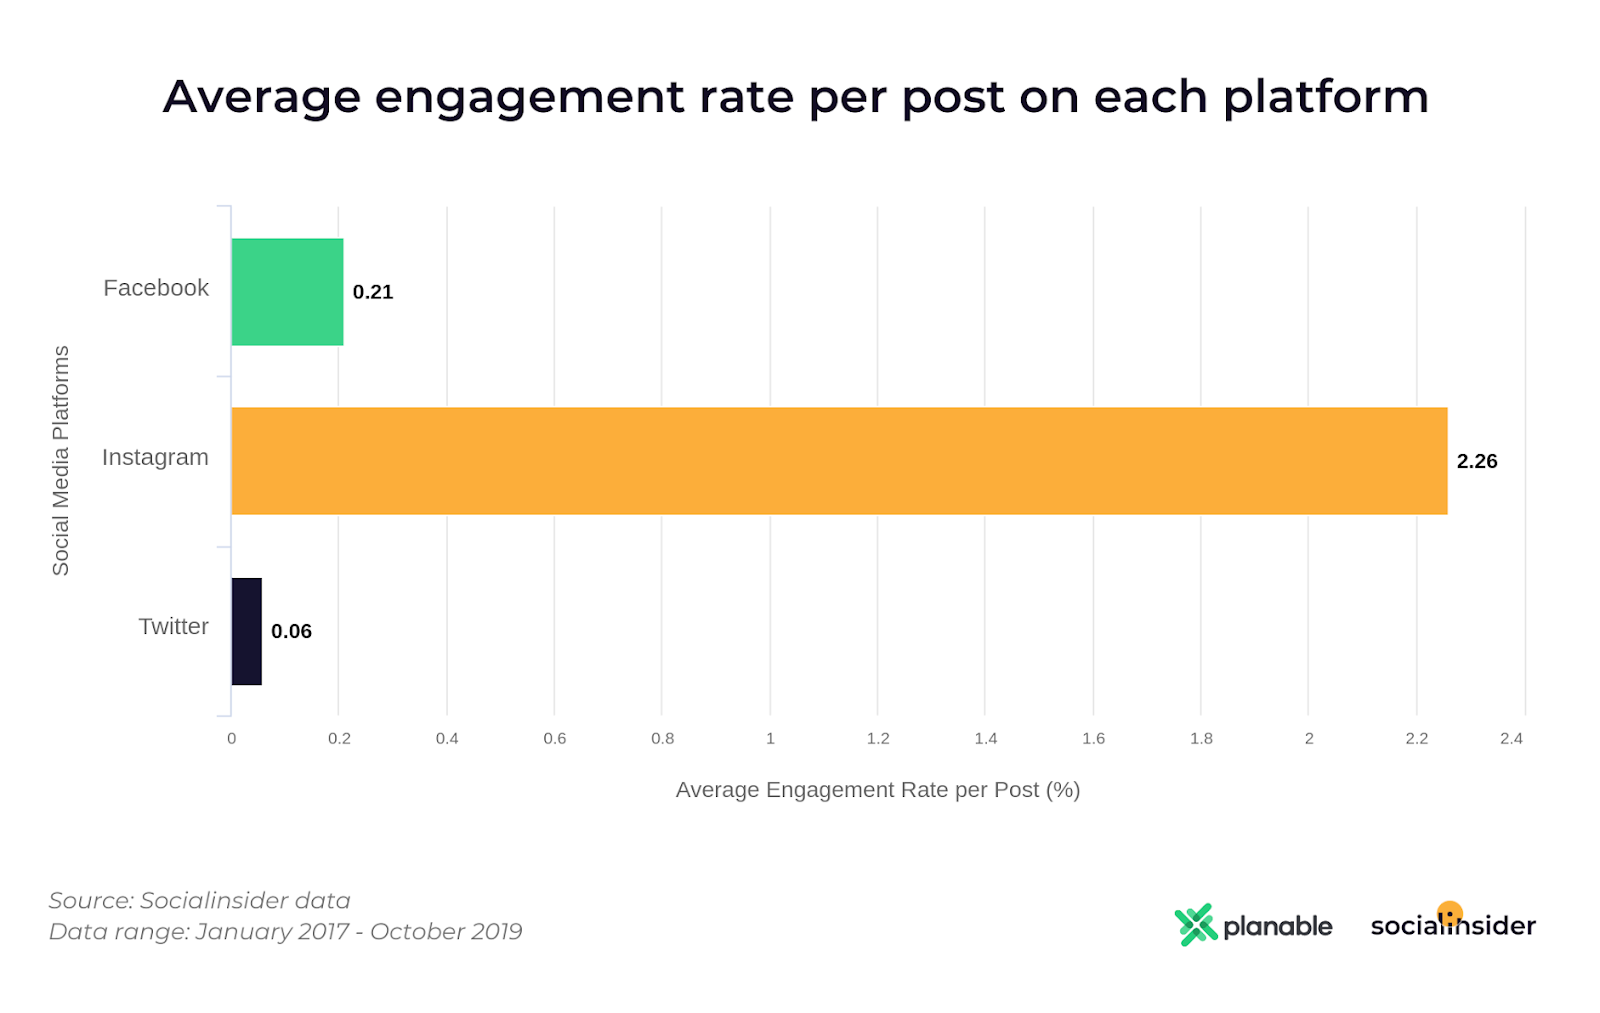 Average engagement rate per post on Facebook, Instagram and Twitter